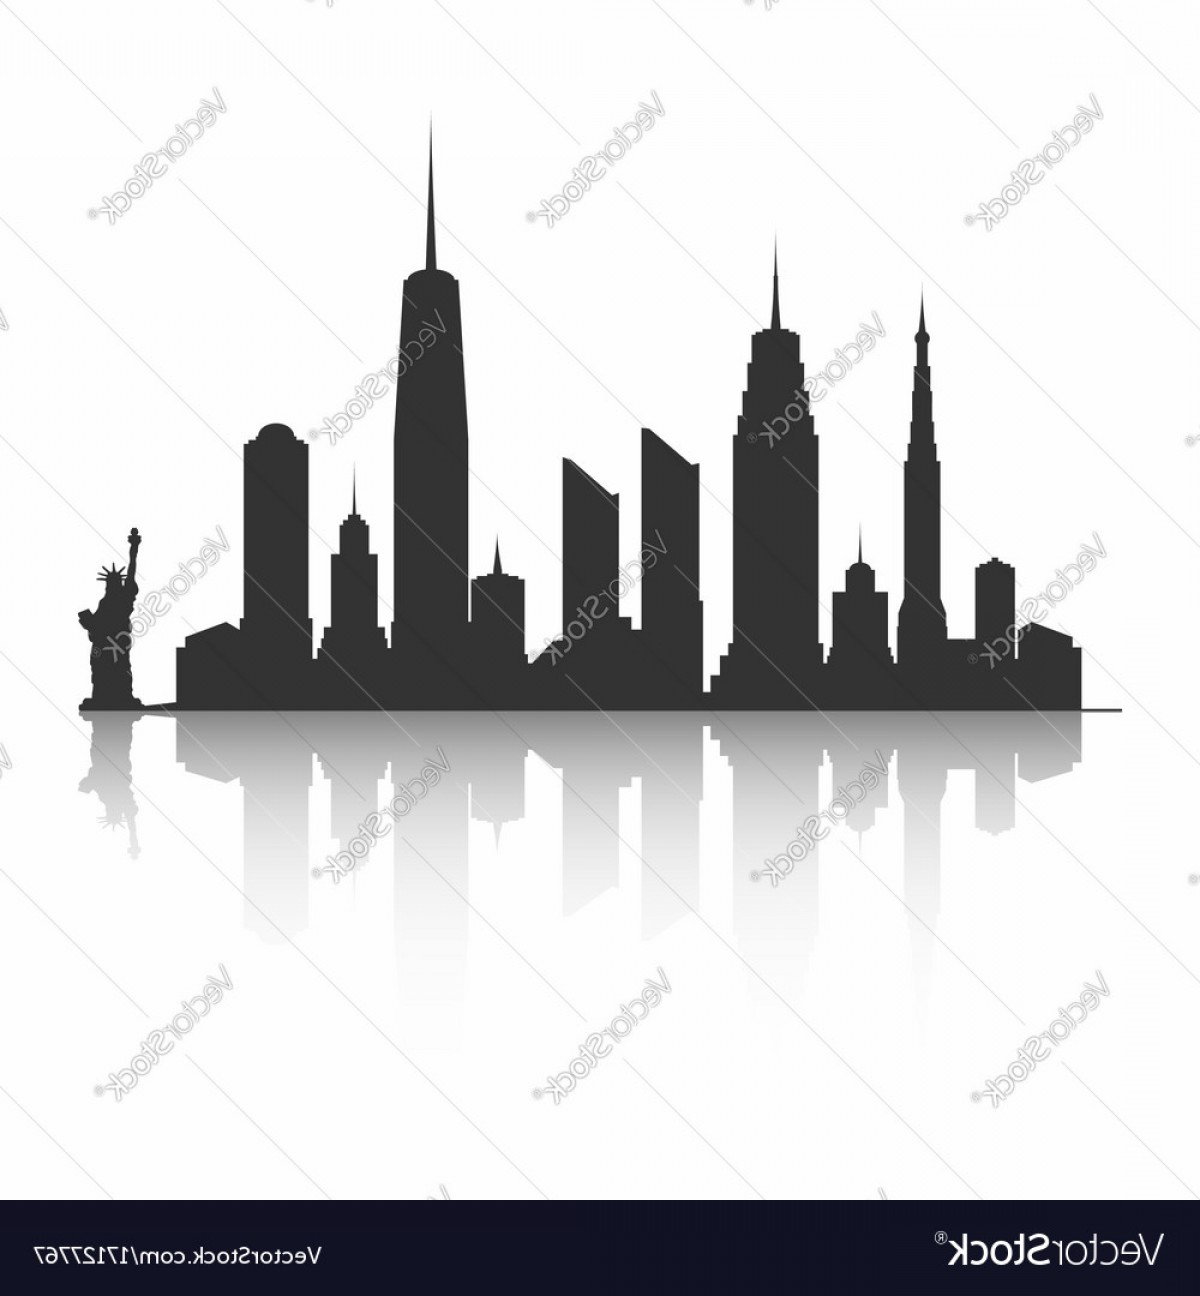 Word skyscrapers clipart picture transparent library New York City Skyline Silhouette Skyscrapers And Vector ... picture transparent library